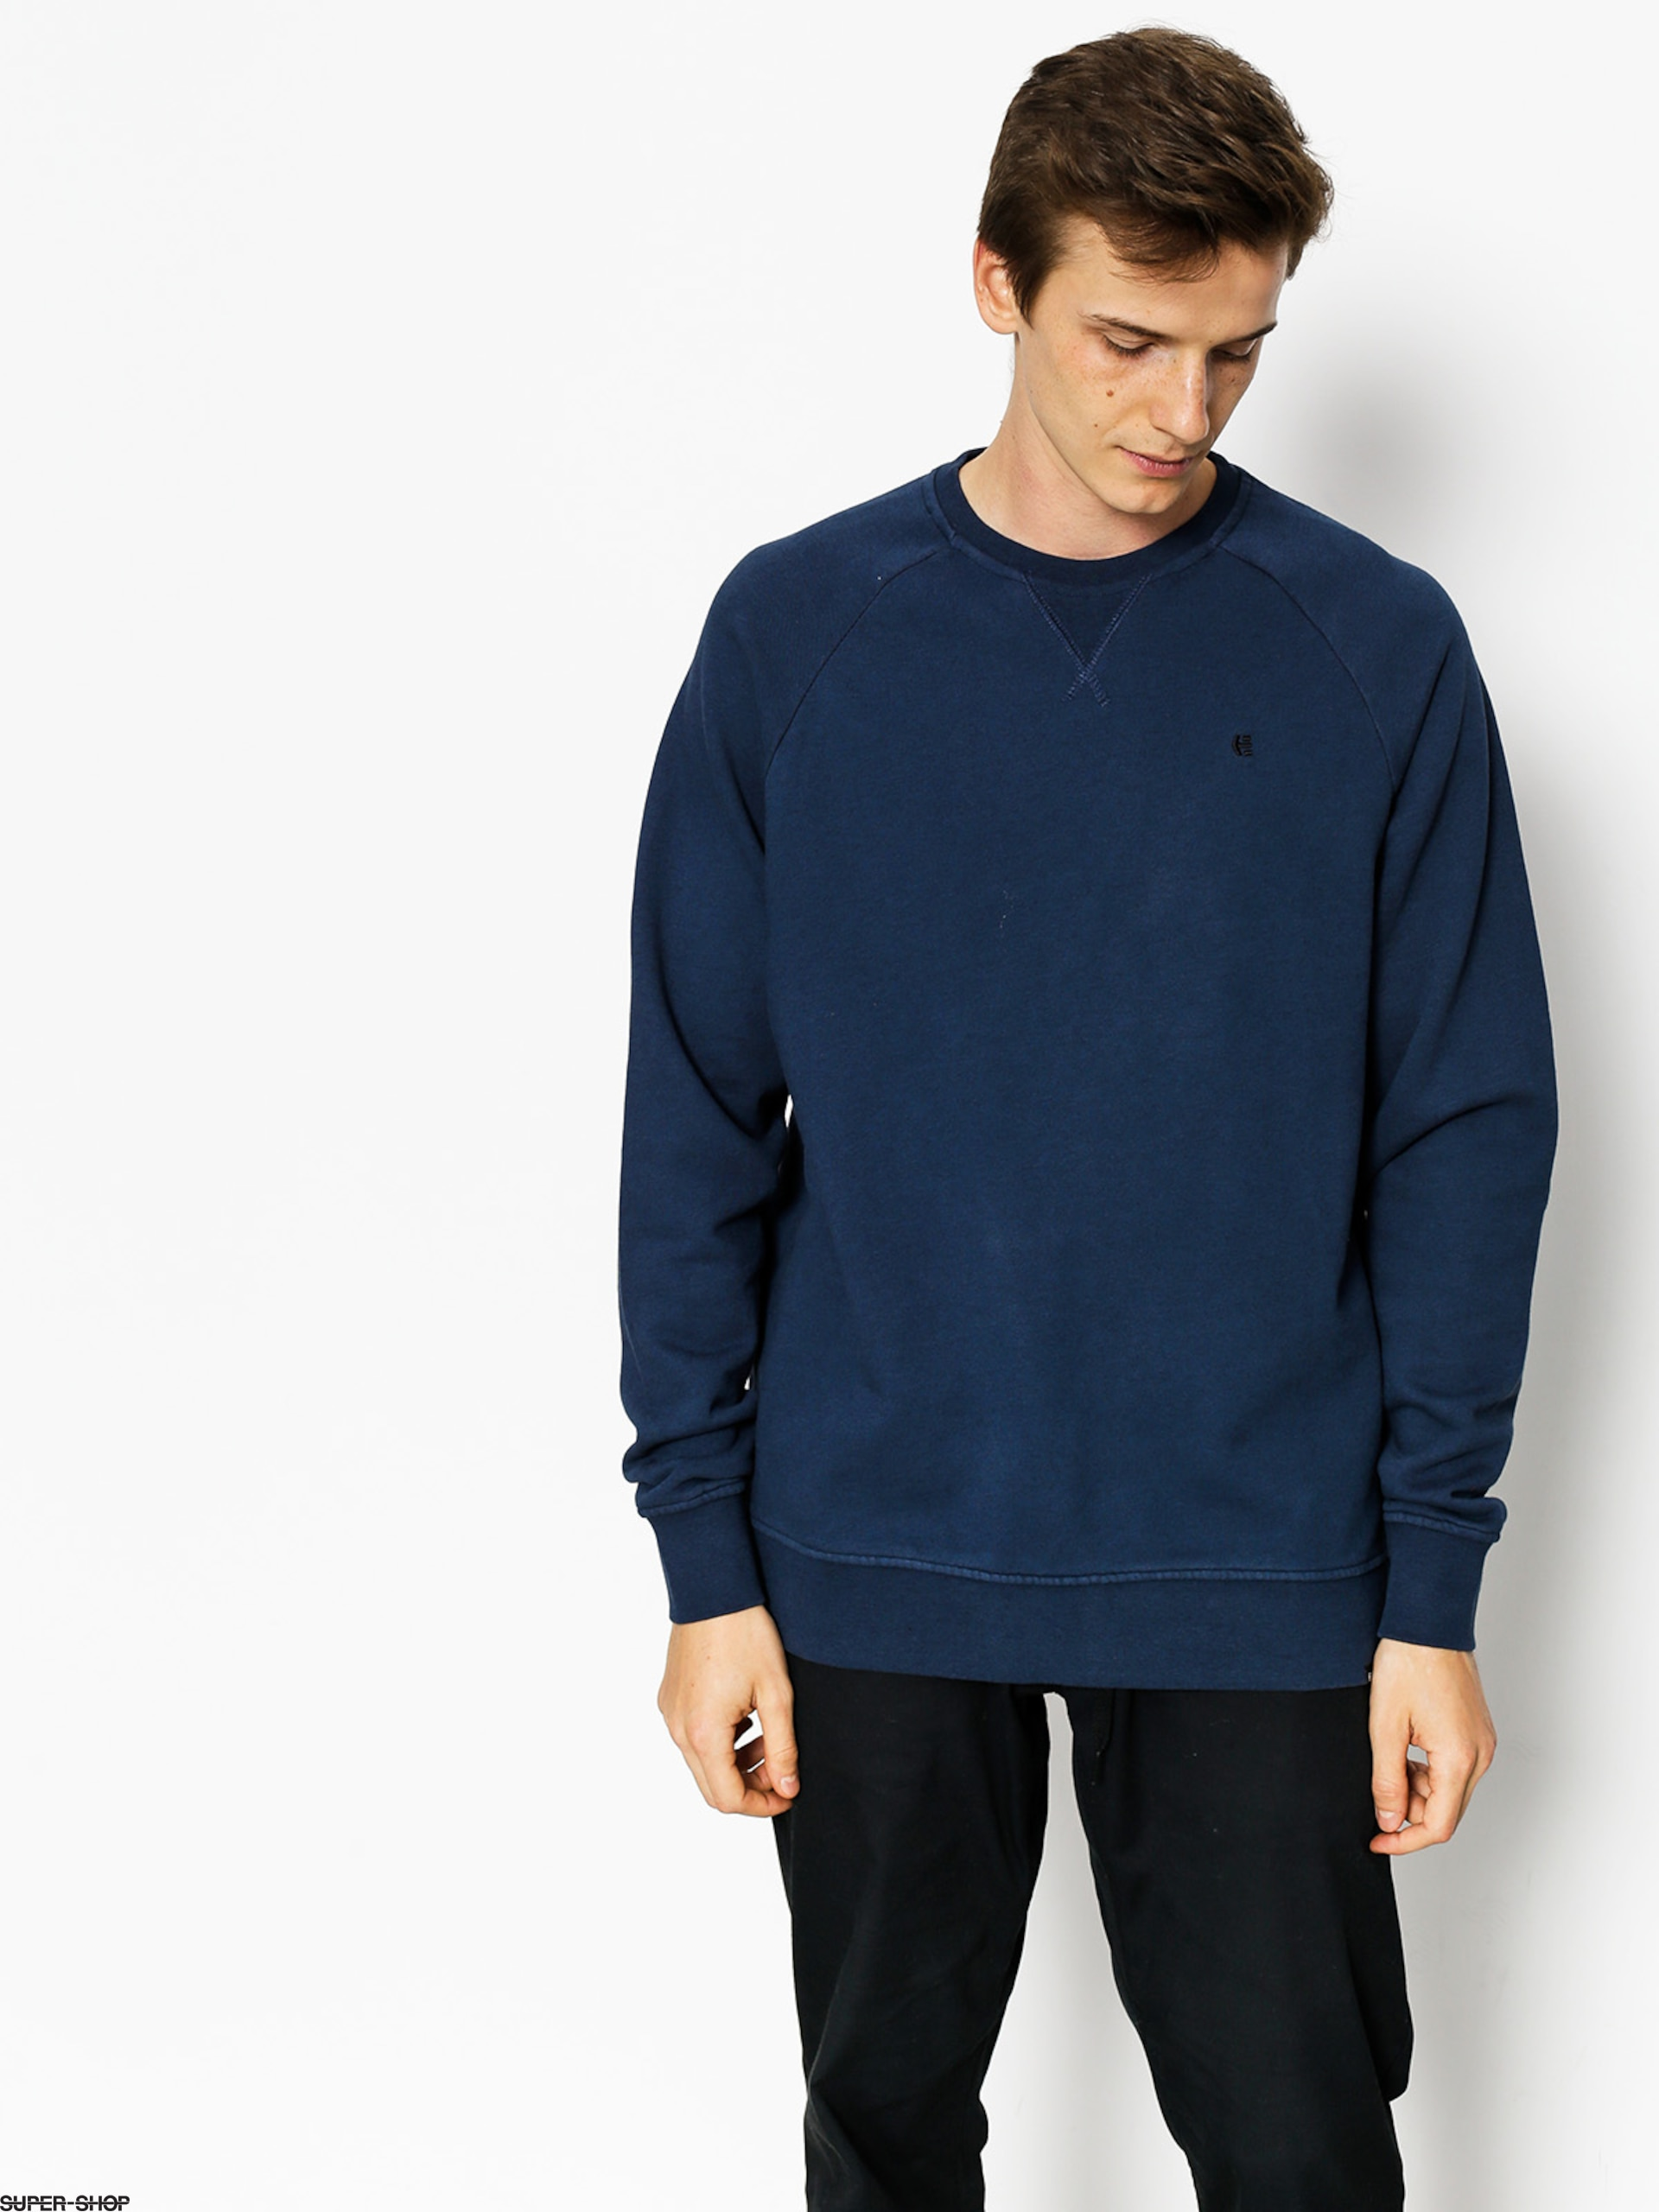 Etnies Sweatshirt Blasted Crew (dark navy)